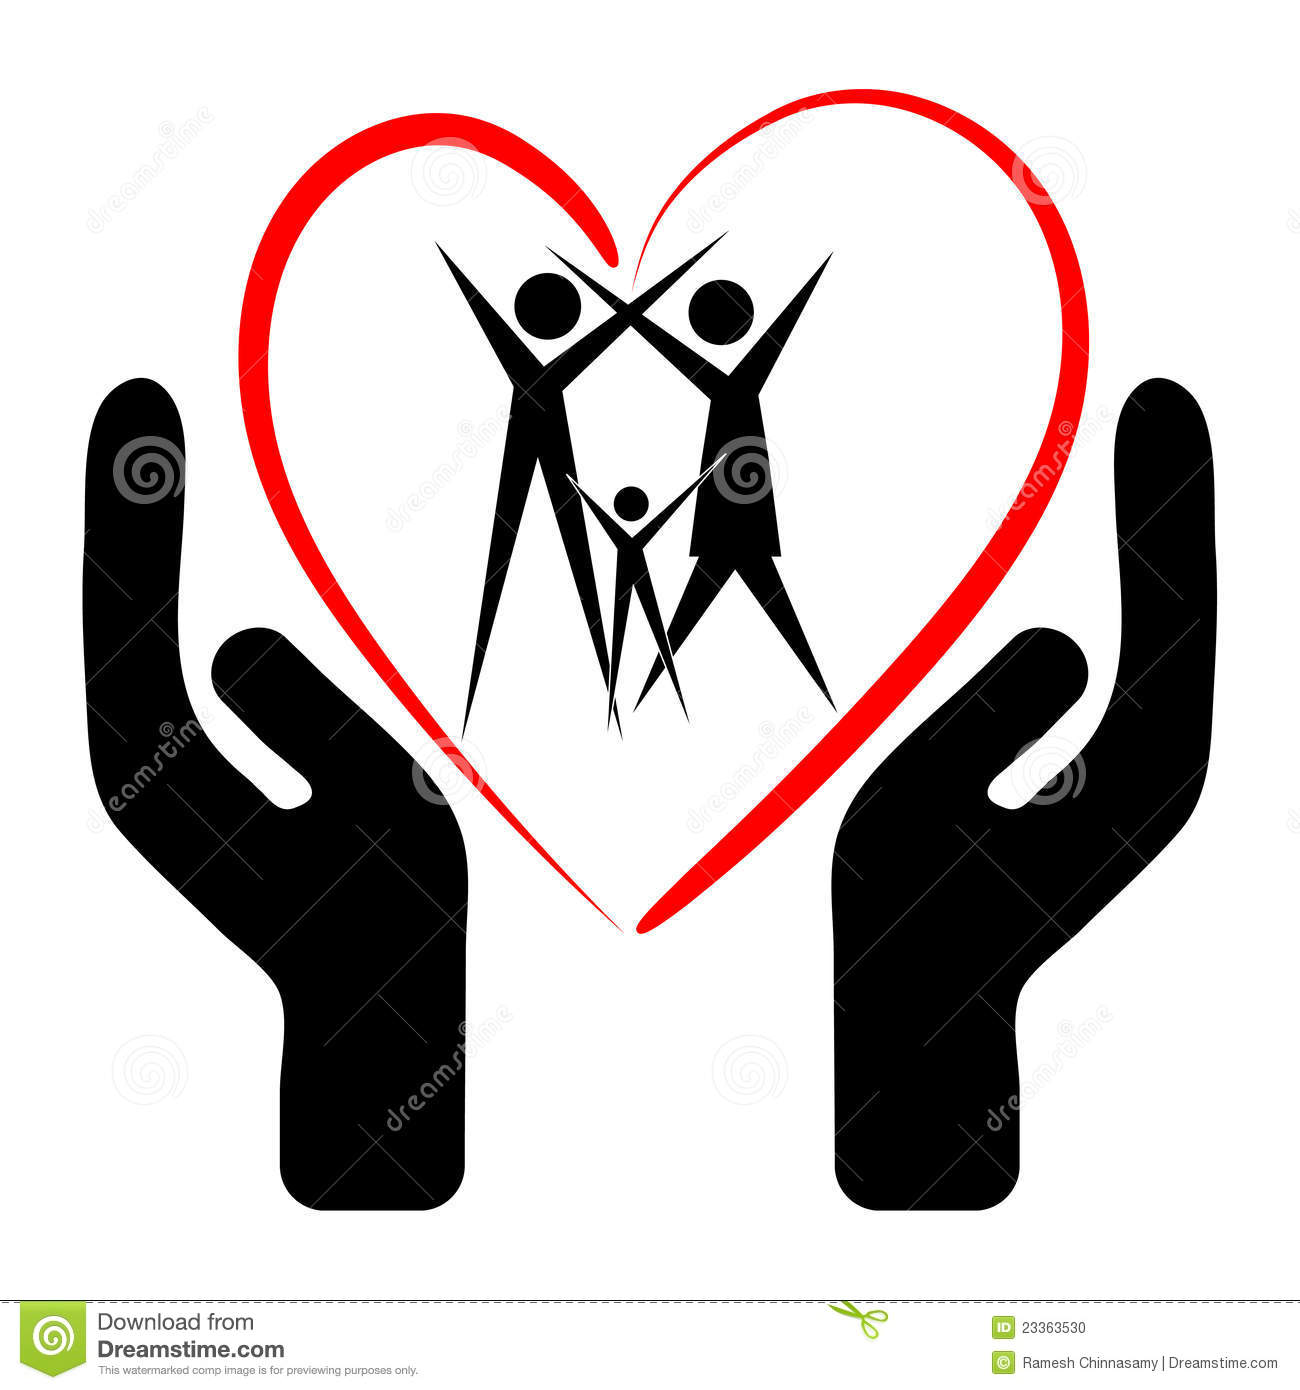 Caring For Others Clipart - Clipart - 110.9KB